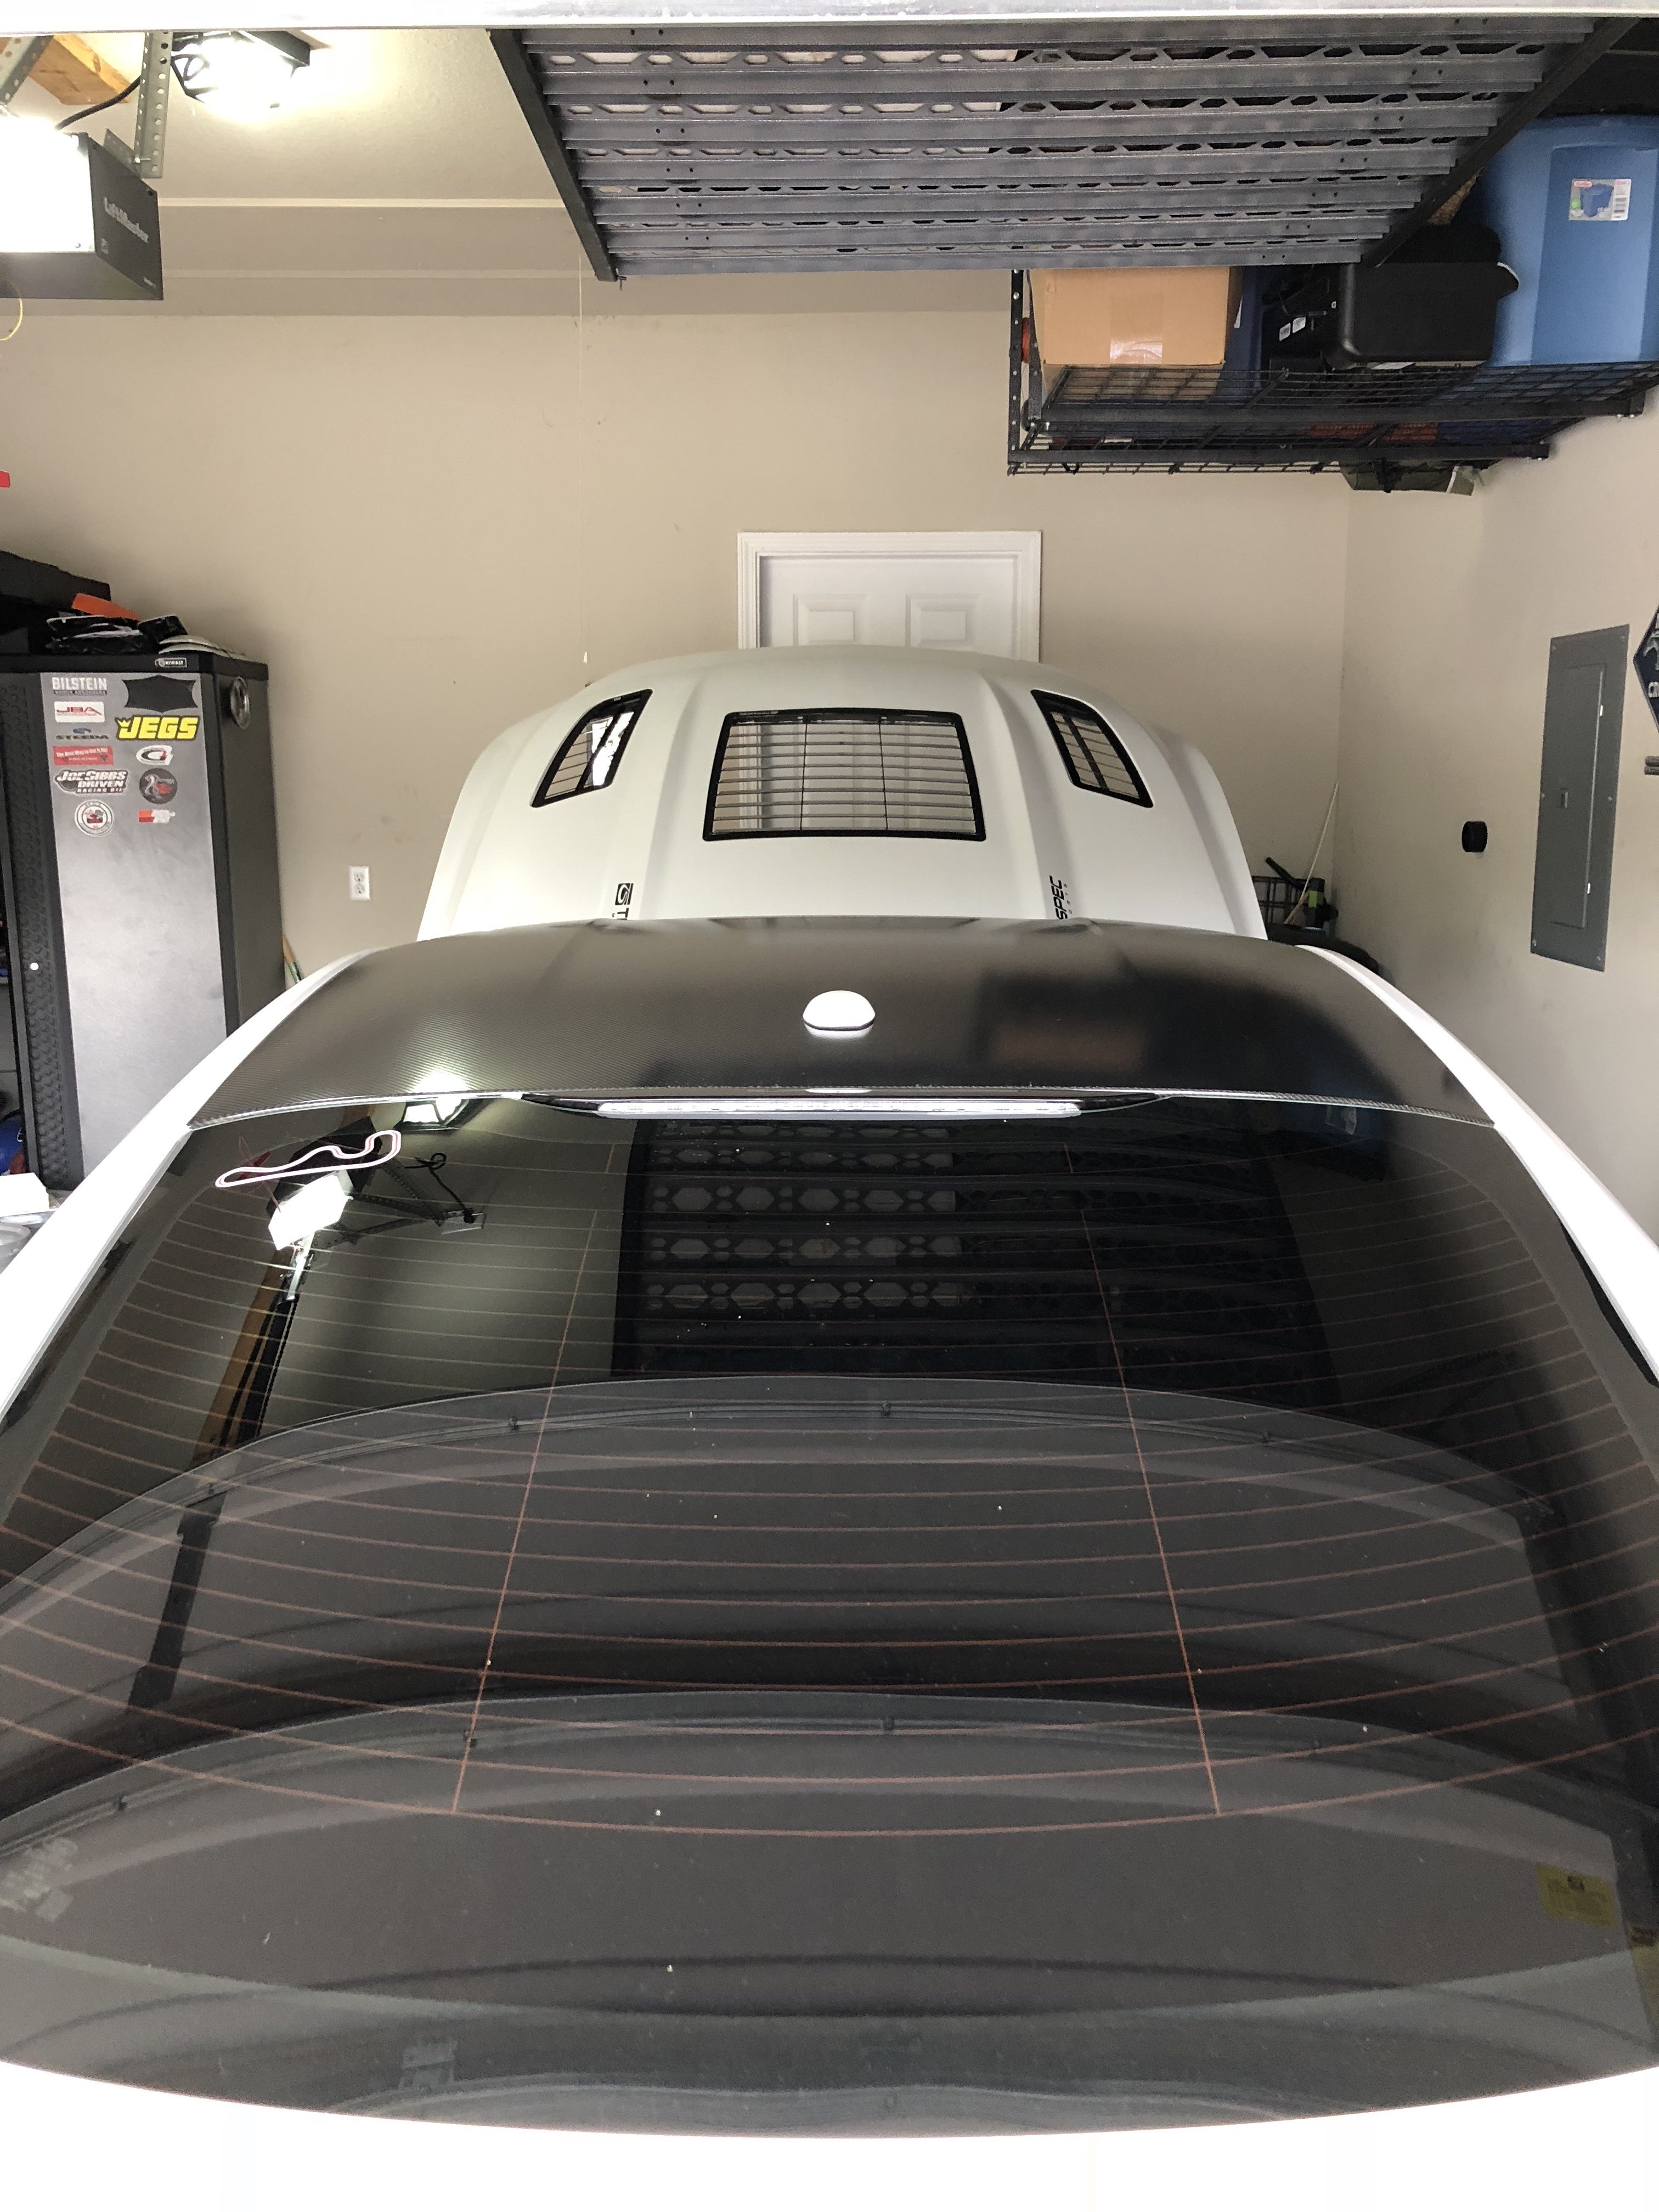 04 Mustang Gt >> Ford mustang, ford mustang s550 hood vents